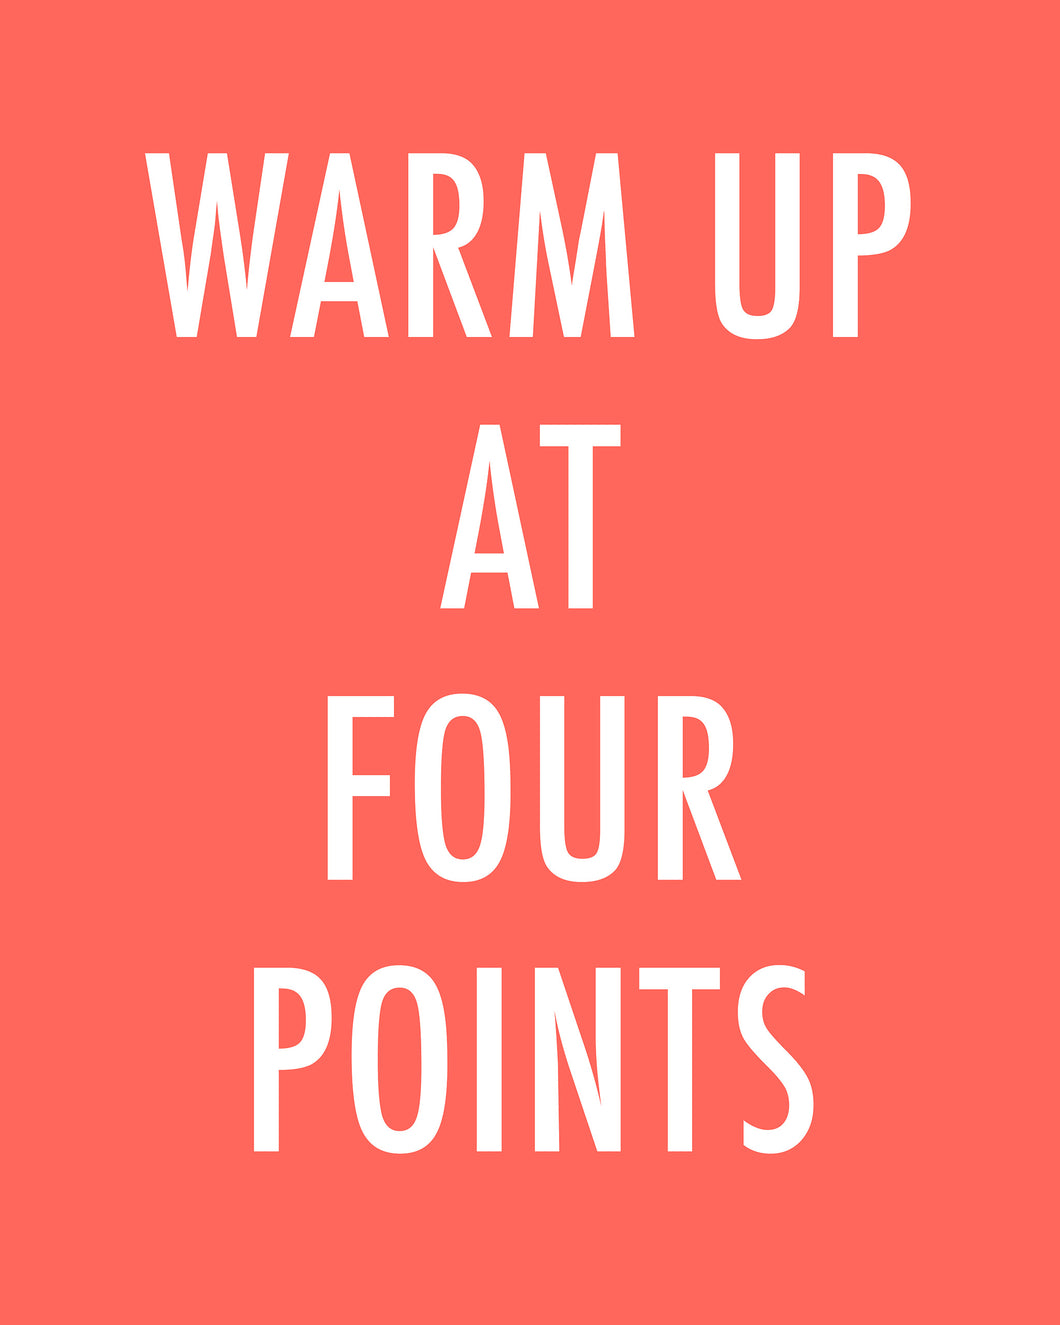 WARM UP AT FOUR POINTS - Color Pop Print